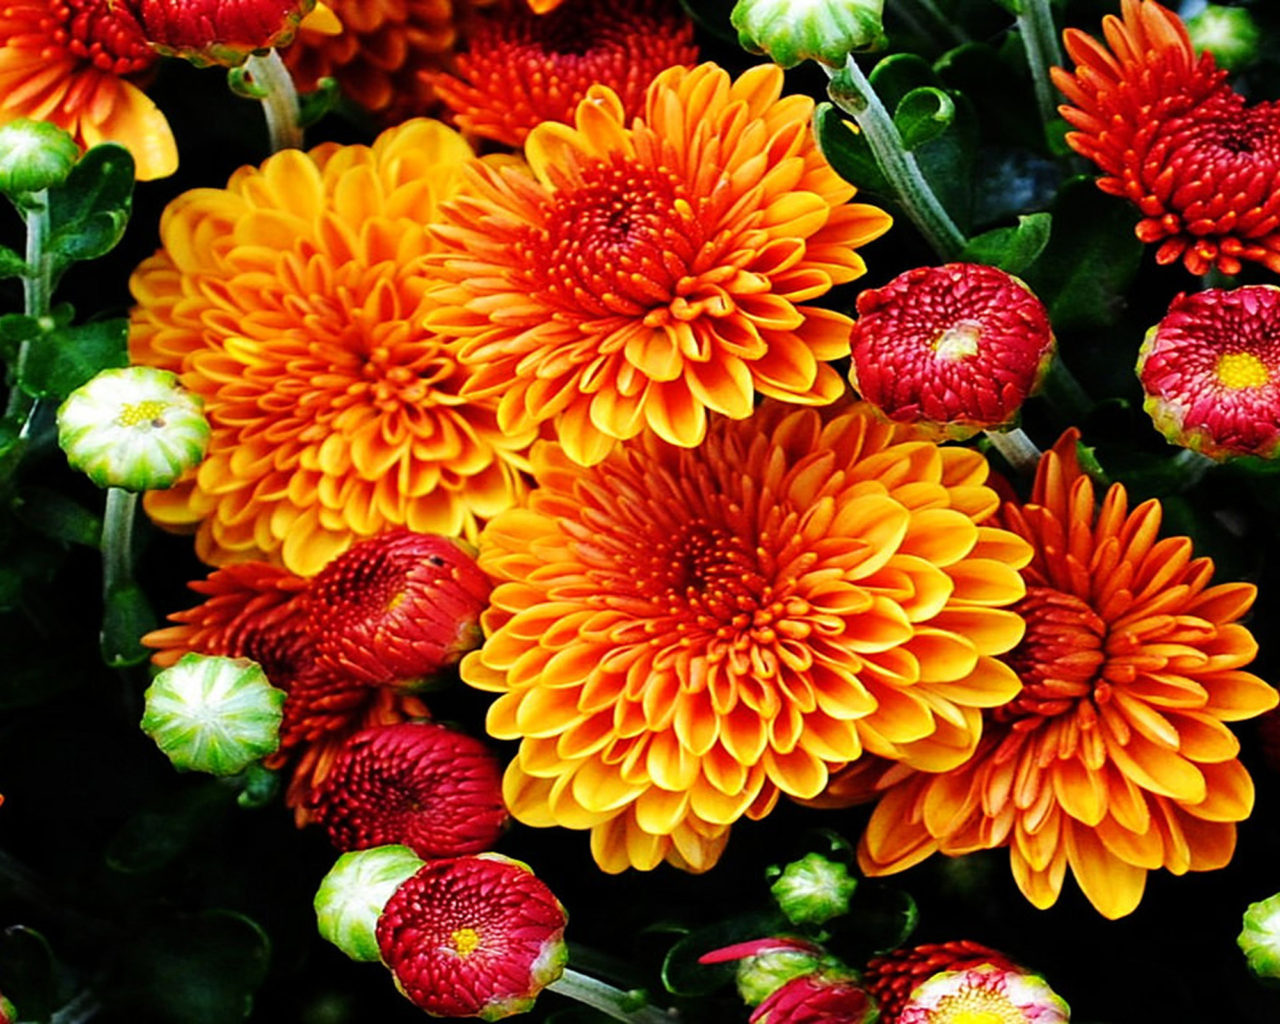 Free Fall Disney Wallpaper Fall Mums Colored Flowers From The Garden With A Beautiful